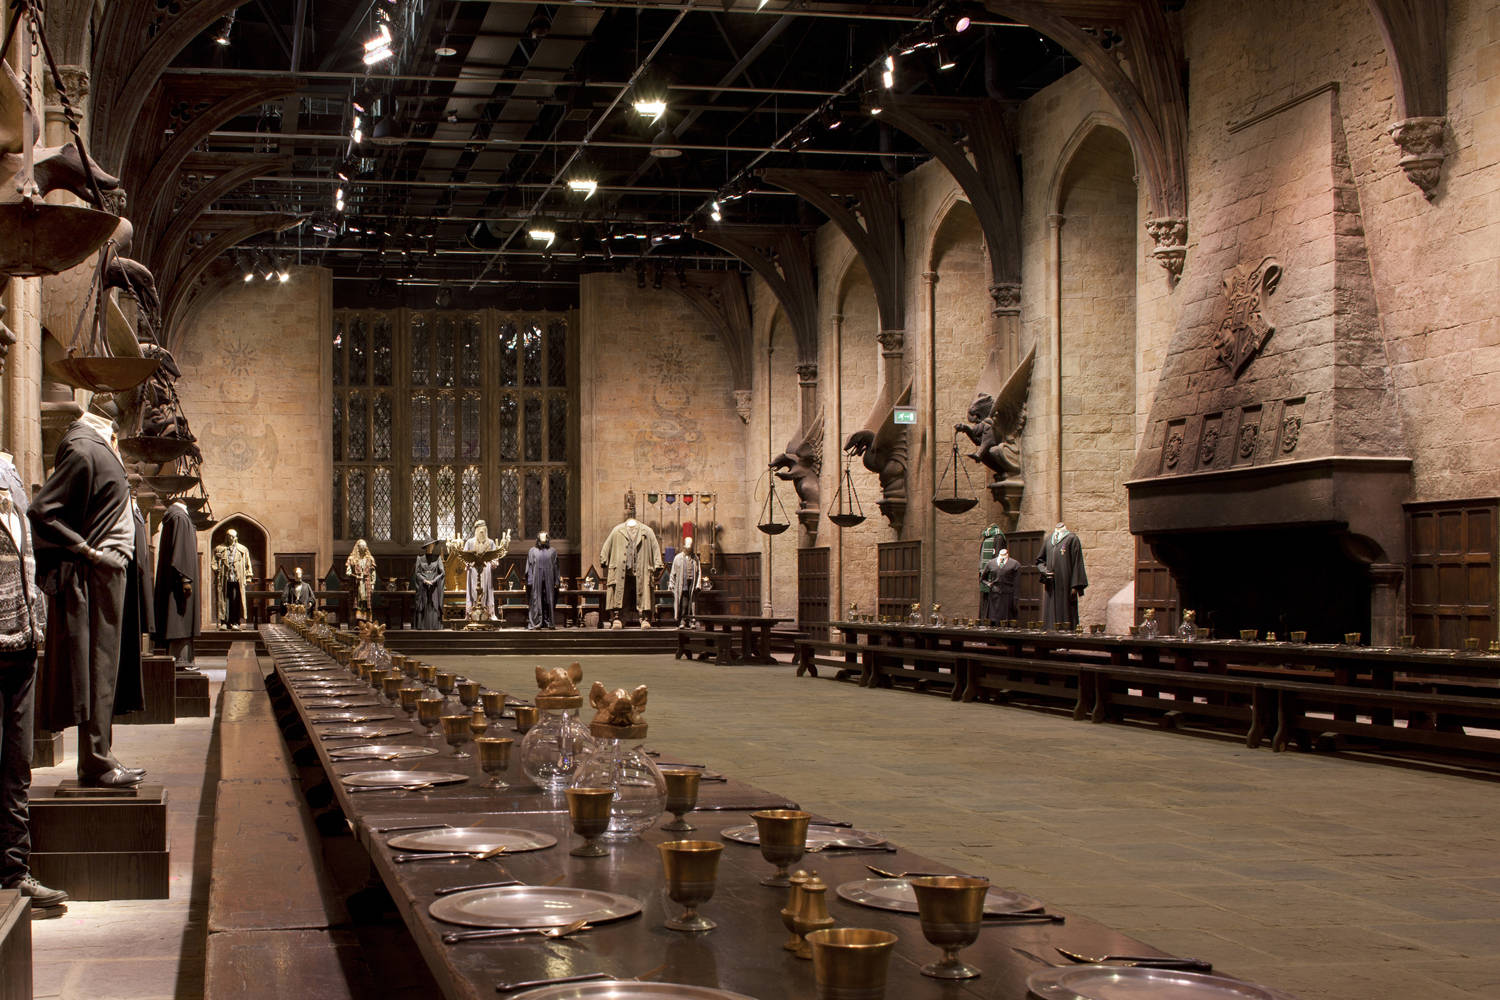 http://img1.wikia.nocookie.net/__cb20120812171638/harrypotter/images/4/4d/GreatHall.jpg